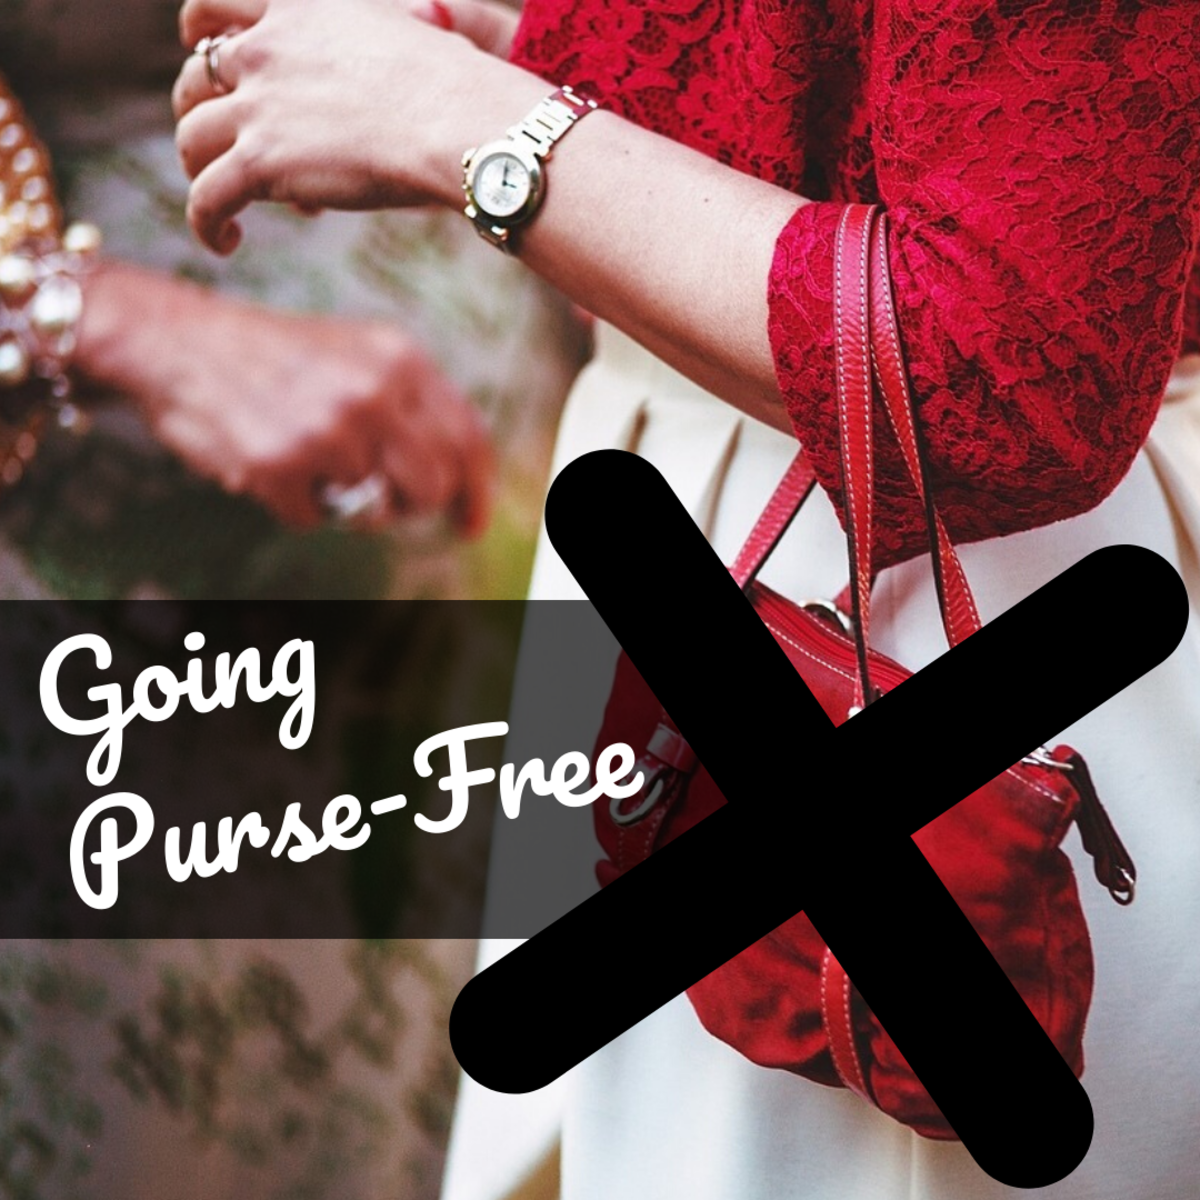 Purseless and Proud: Why You Should Stop Carrying a Handbag